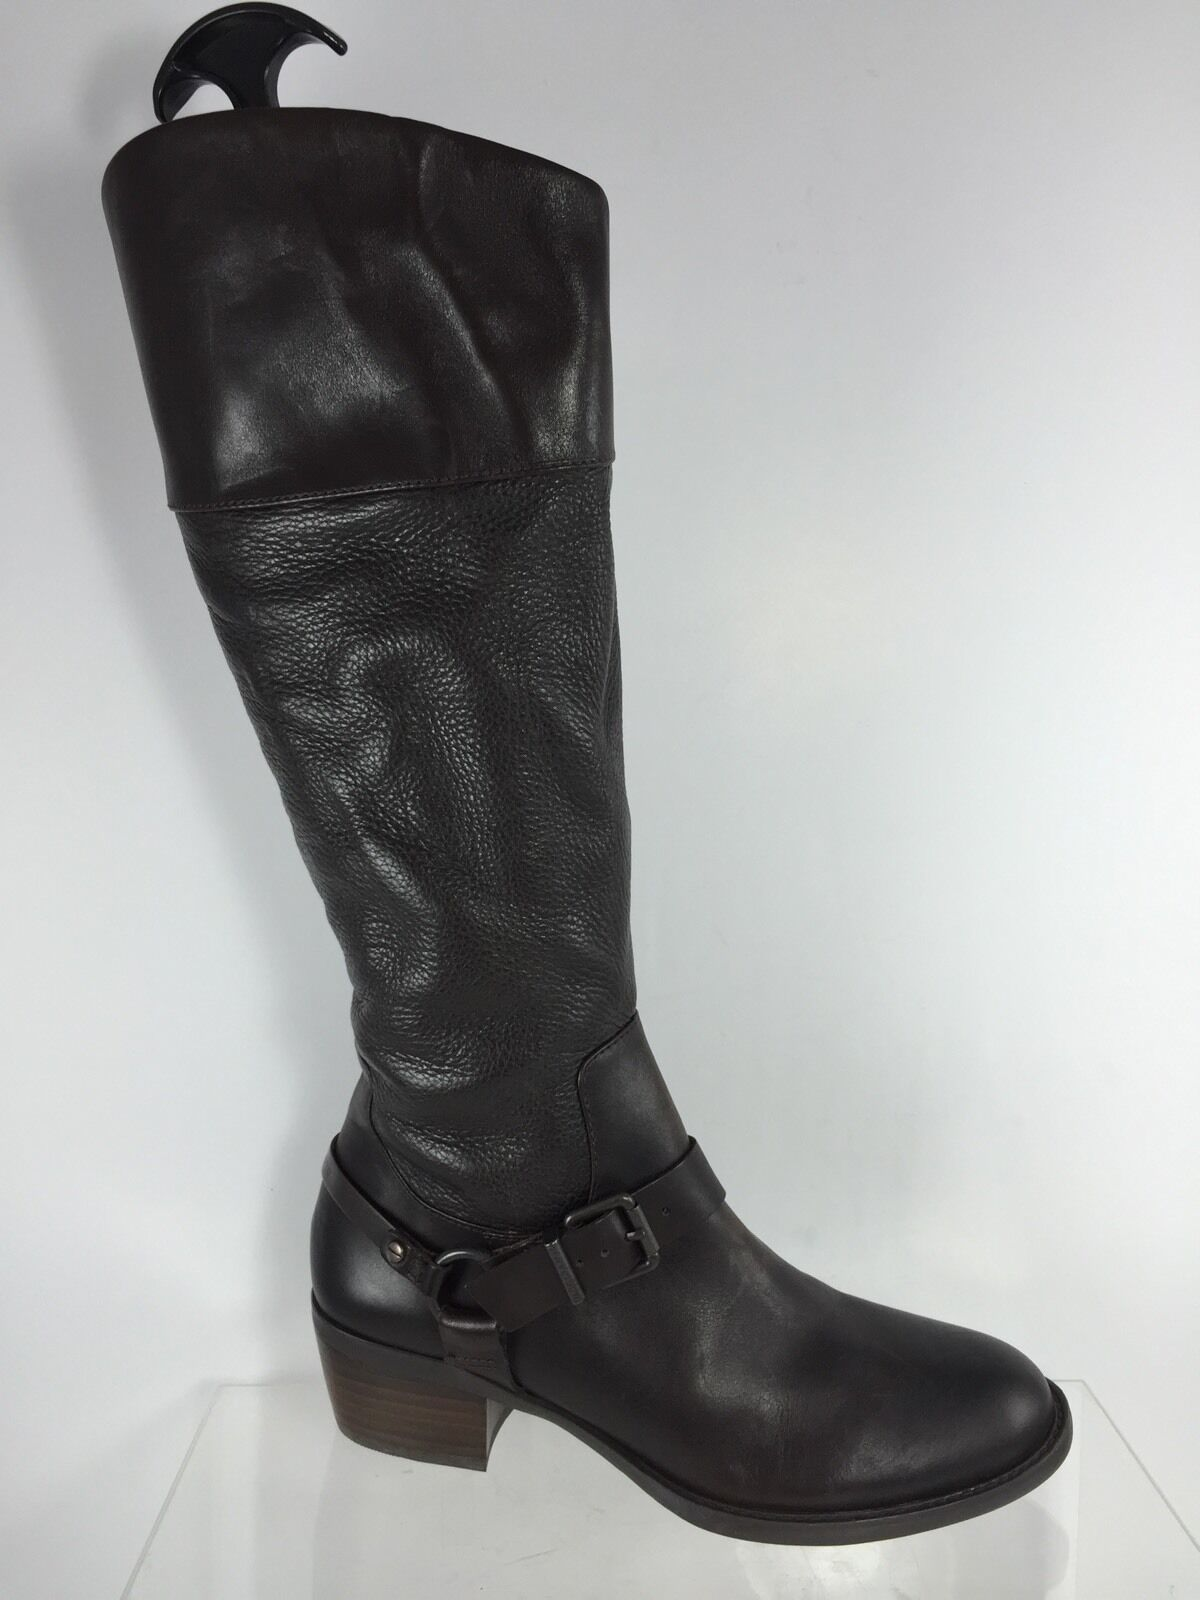 Vince Camuto Brunah Womens Dark Brown Leather Knee Boots 7.5 M